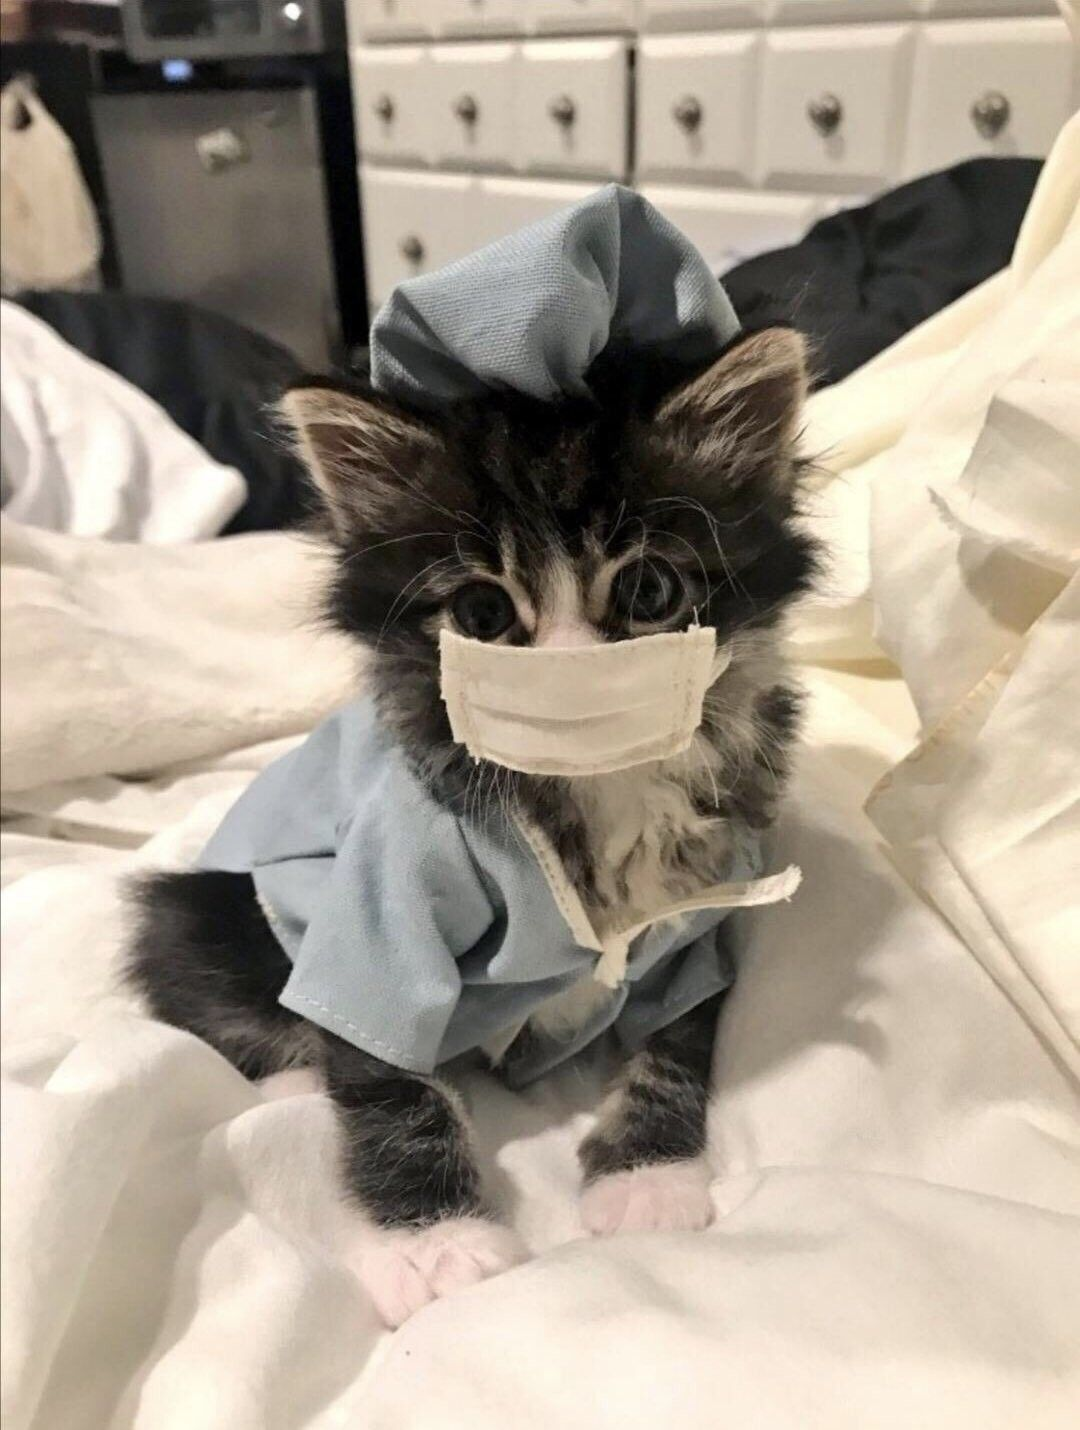 Pin By Aww Cats On Cats With Jobs In 2020 Cute Baby Animals Cute Animals Cute Funny Animals